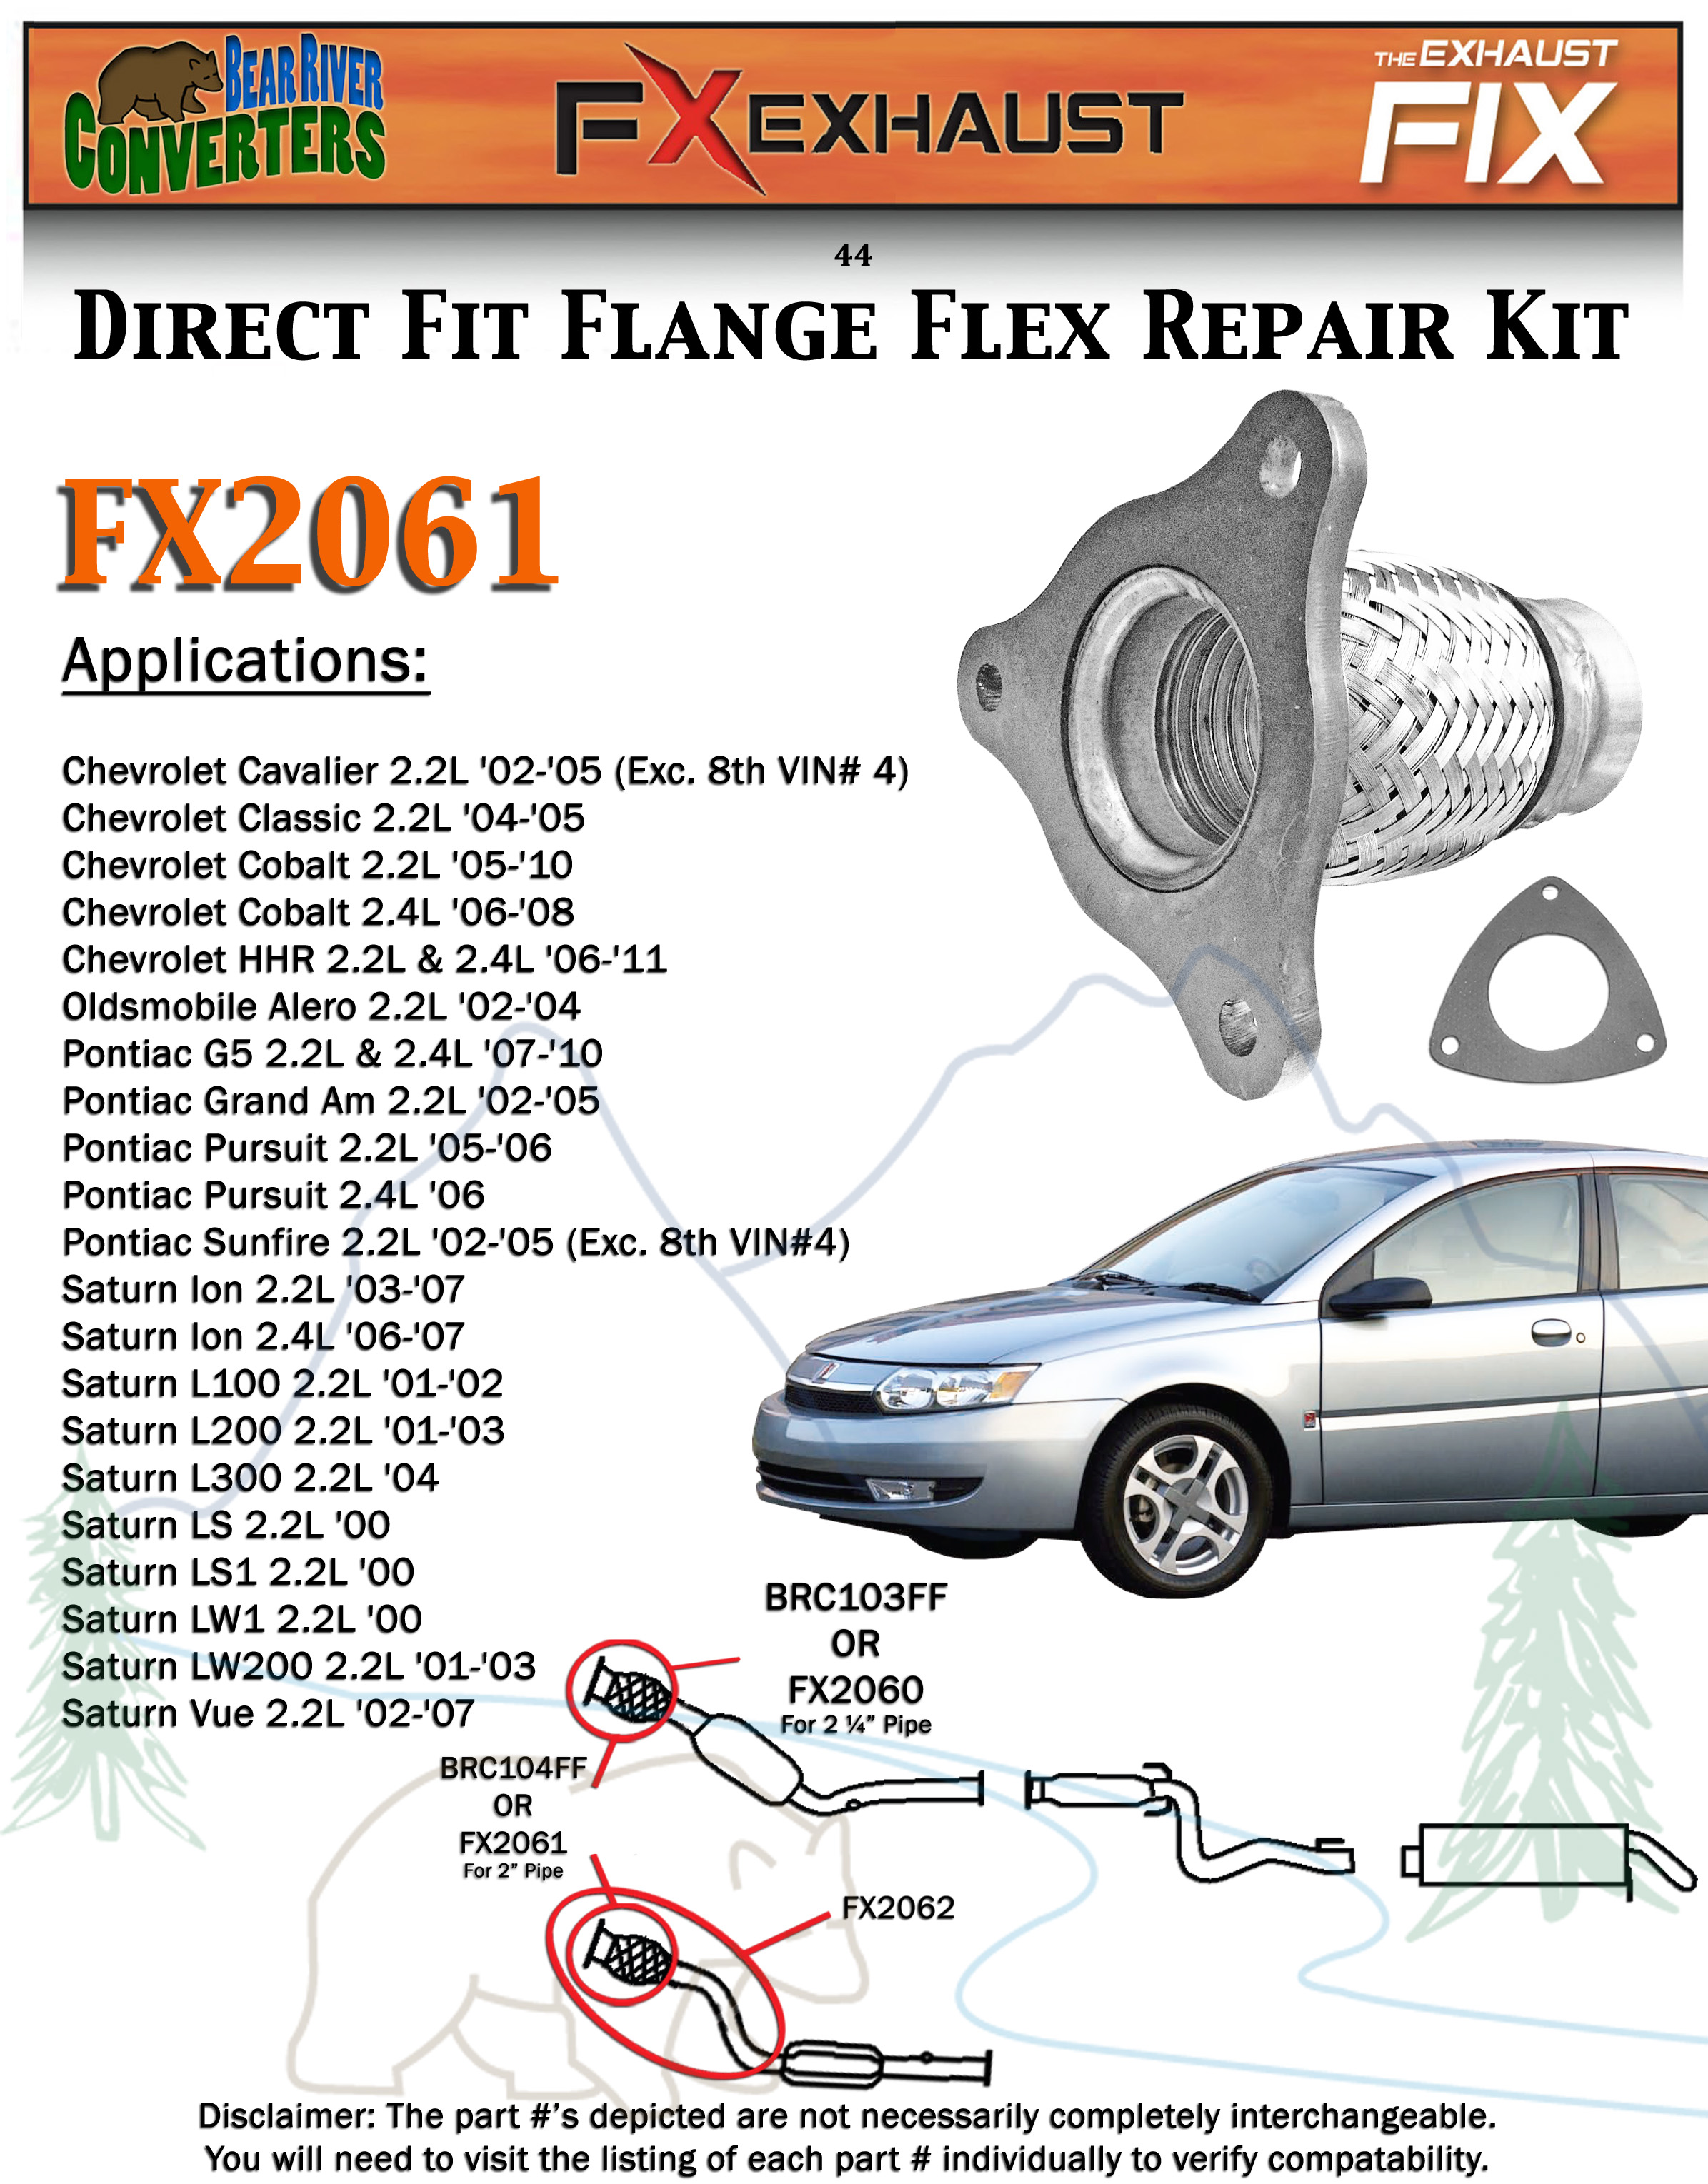 FX2061 Semi Direct Fit Exhaust Flange Repair Flex Pipe Replacement Kit With  Gasket